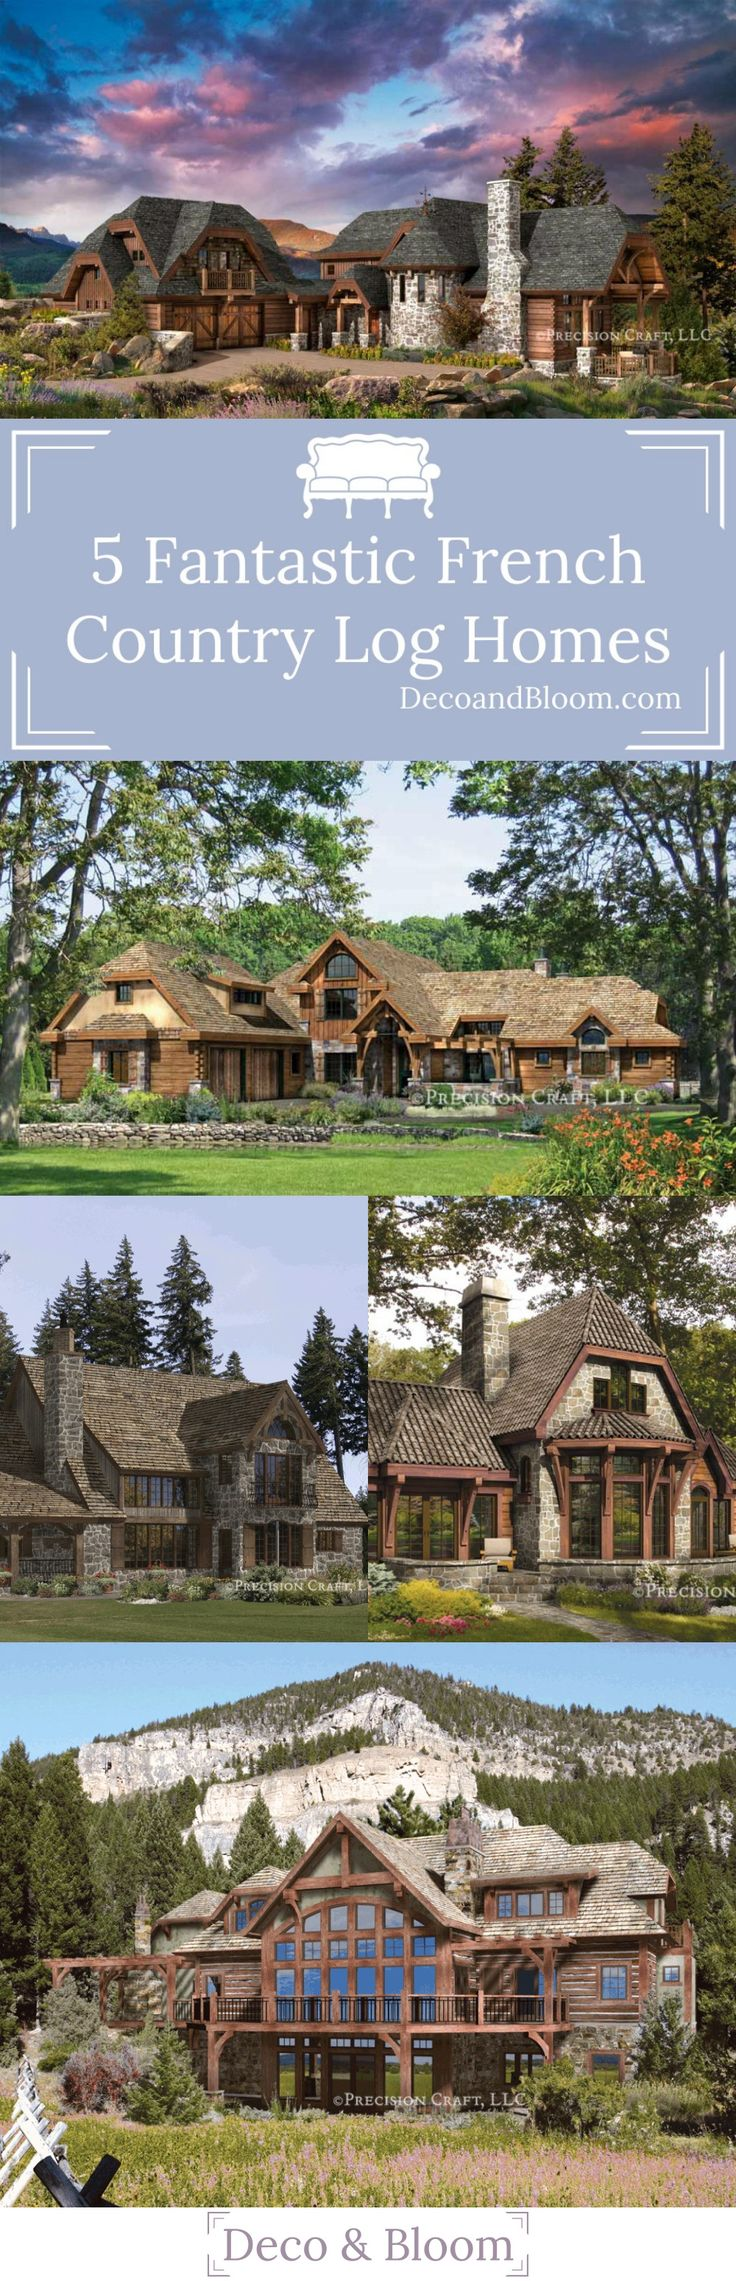 5 Fantastic French Country Log Homes Under $1M - From the Home Decor Discovery Community at www.DecoandBloom.com